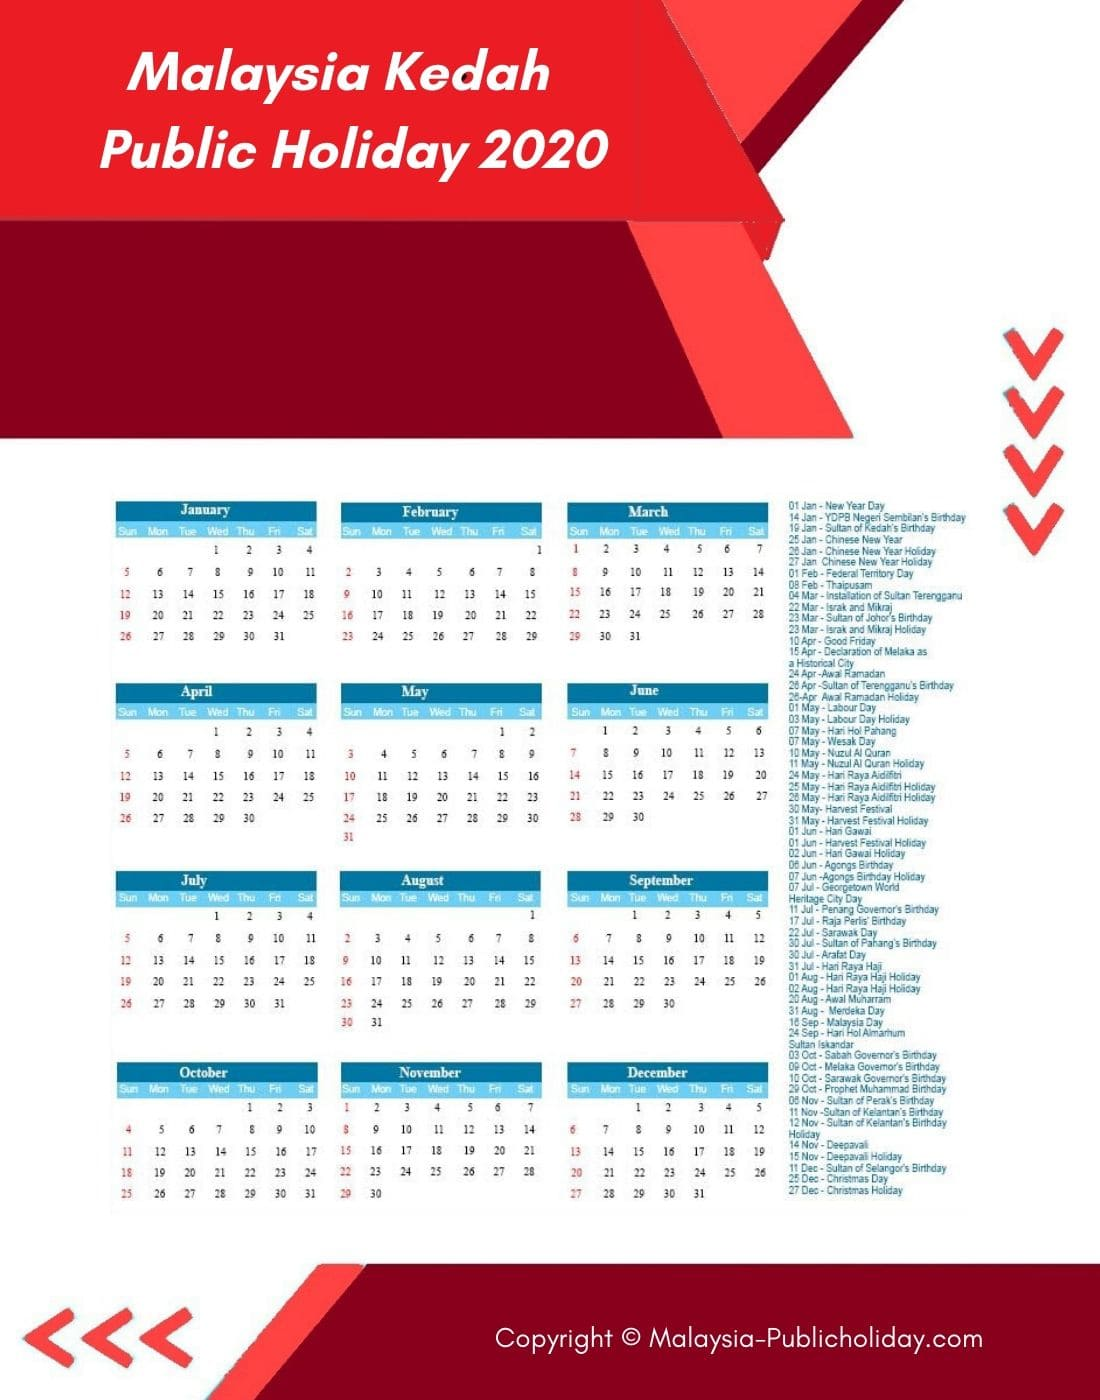 Kedah Calendars with Holidays 2020